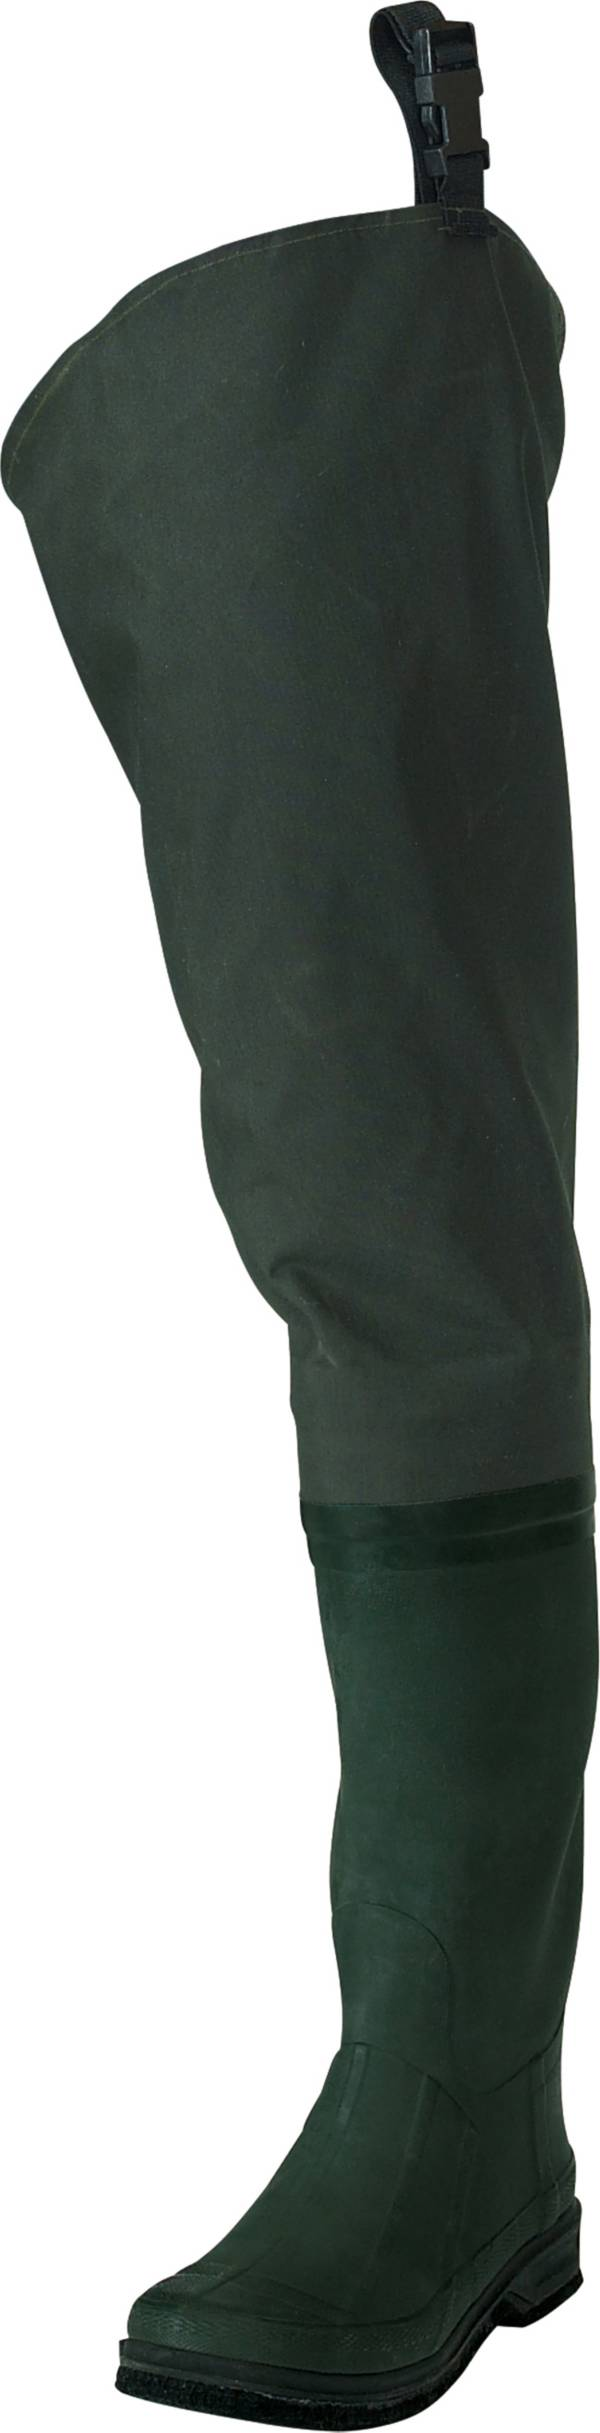 frogg toggs Cascades Poly/Rubber Cleated Hip Waders product image